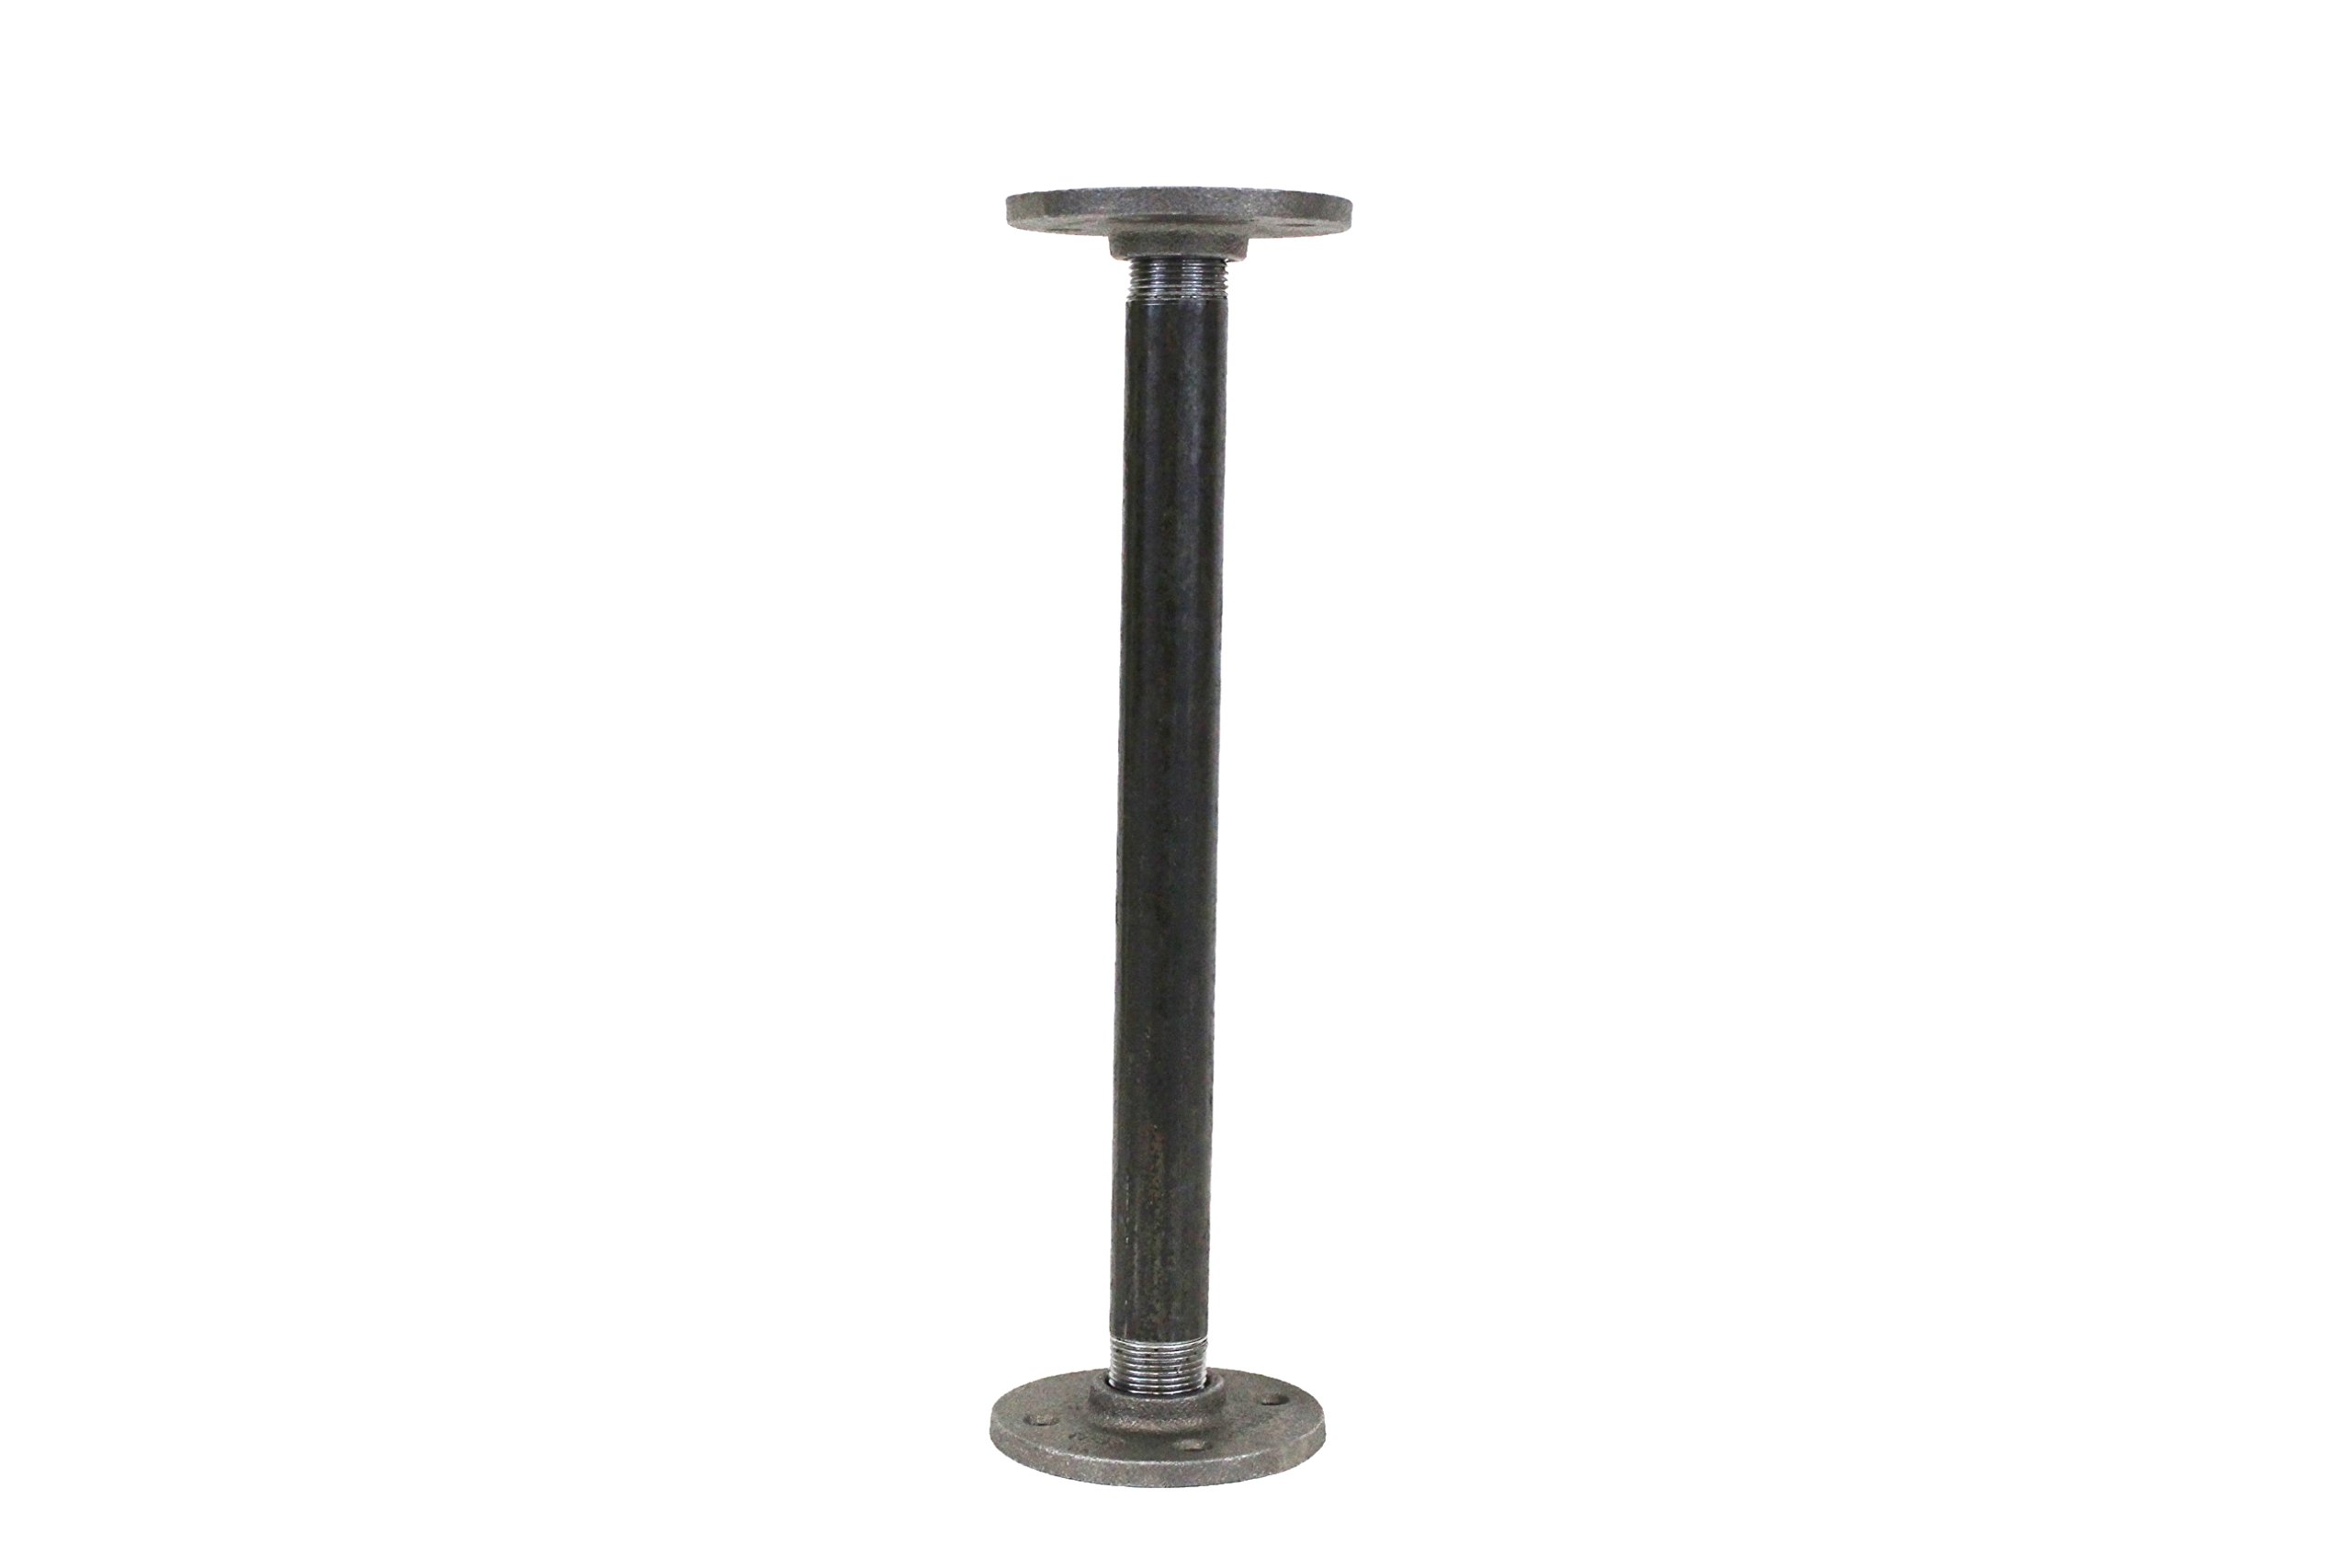 img black handmaidtales i flange console table floor diy pipe inch